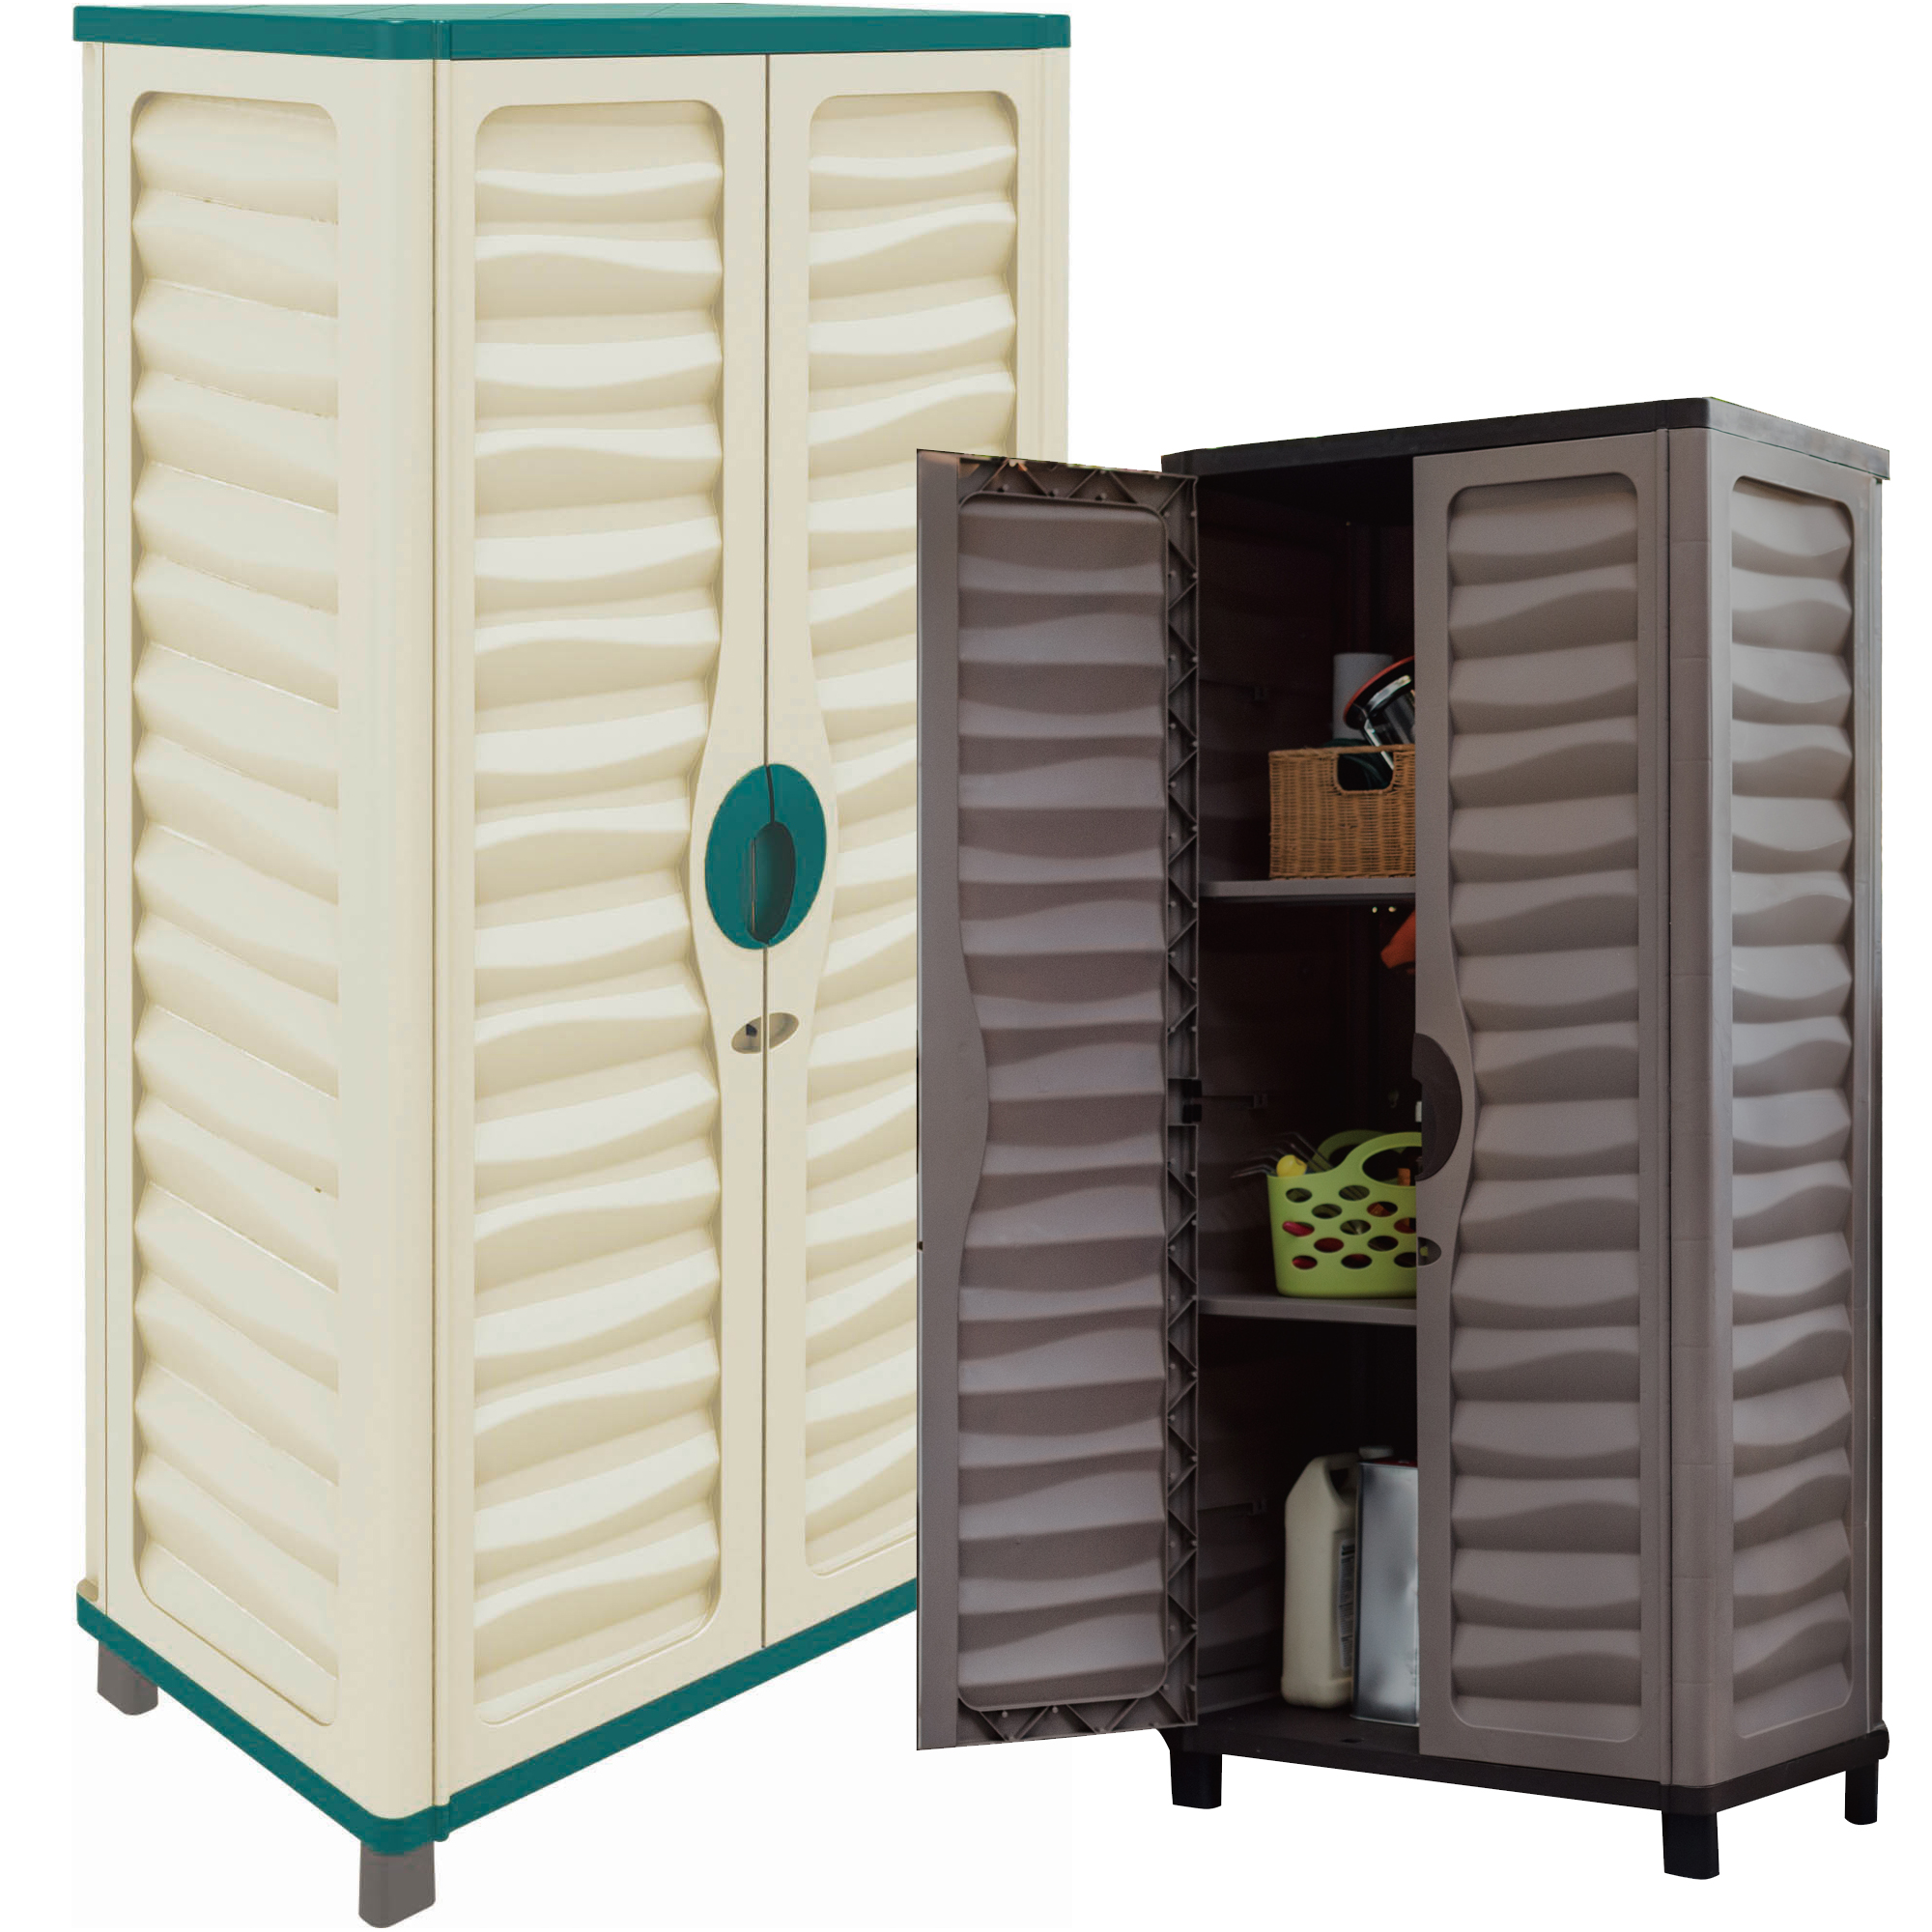 Garage Utility Cabinets Details About Utility Cabinet Outdoor Garden Plastic Storage Unit Garage Tool Box 2 Colours